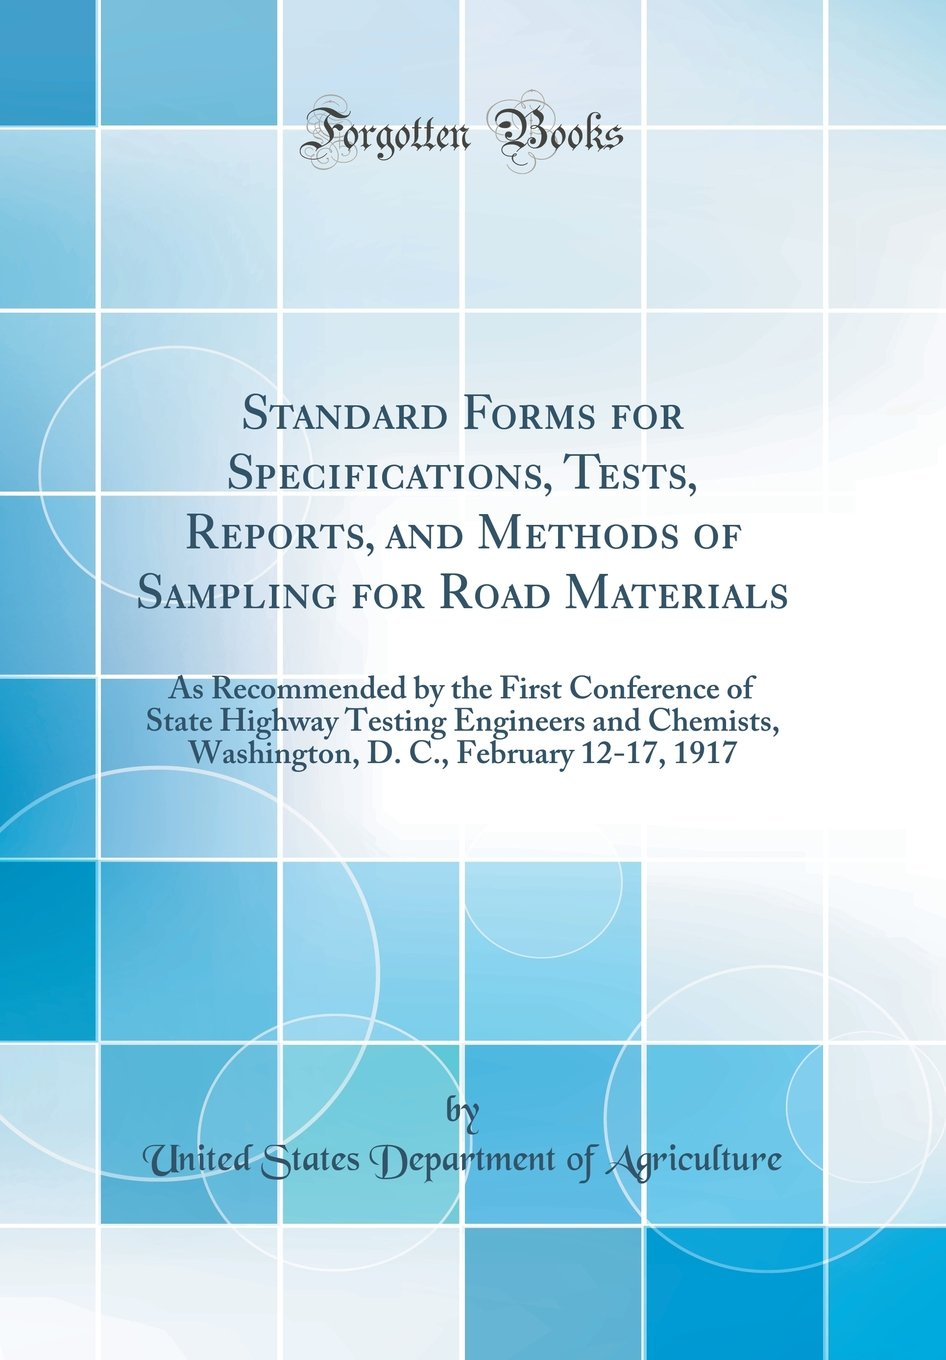 Standard Forms for Specifications, Tests, Reports, and Methods of Sampling for Road Materials: As Recommended by the First Conference of State Highway ... D. C., February 12-17, 1917 (Classic Reprint) pdf epub